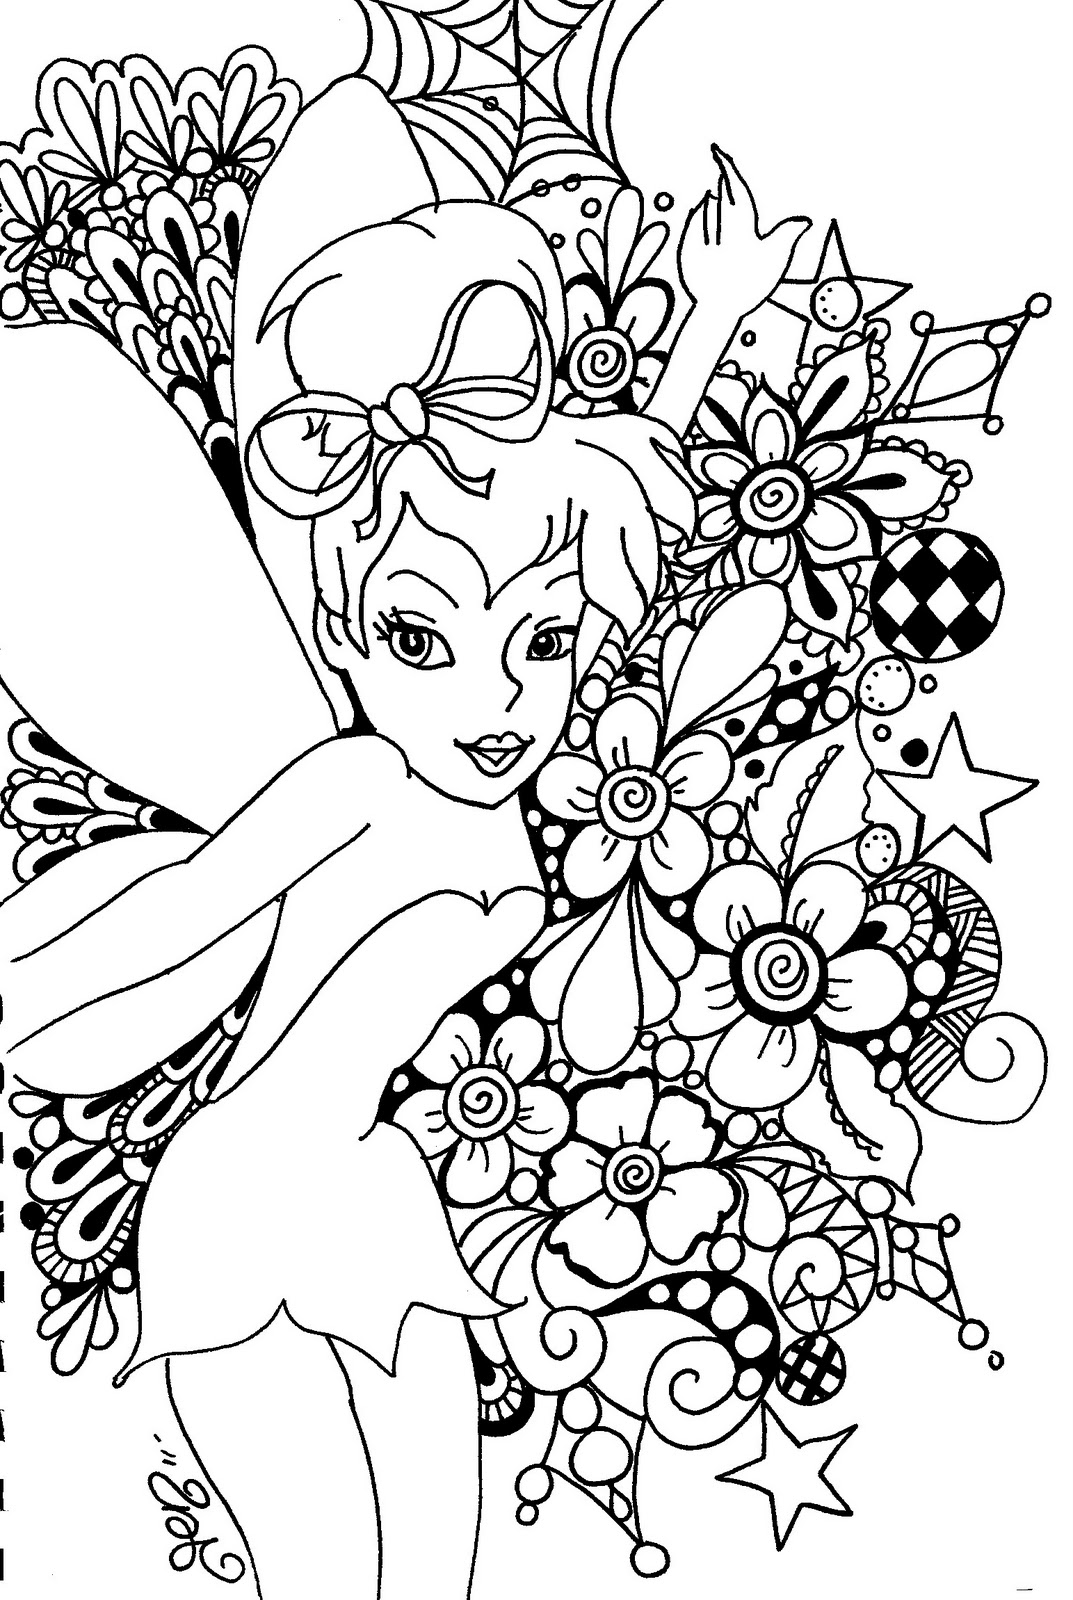 i love this image of tinkerbell to print and colour if you like this coloring picture too just click on it and it will open nice and big then simply - Print And Color